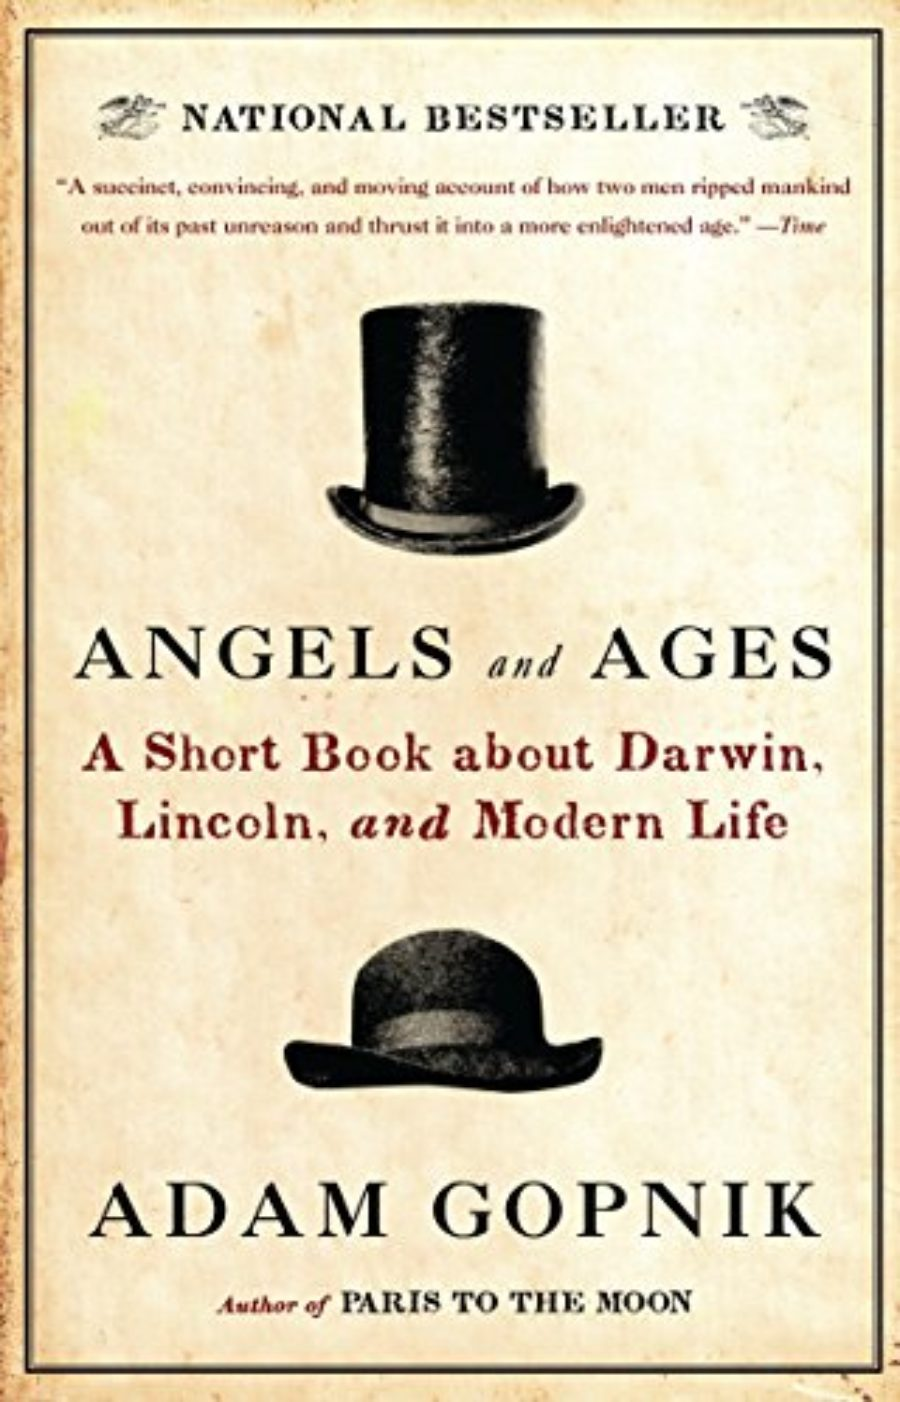 Cover of Angels and Ages: Lincoln, Darwin, and the Birth of the Modern Age